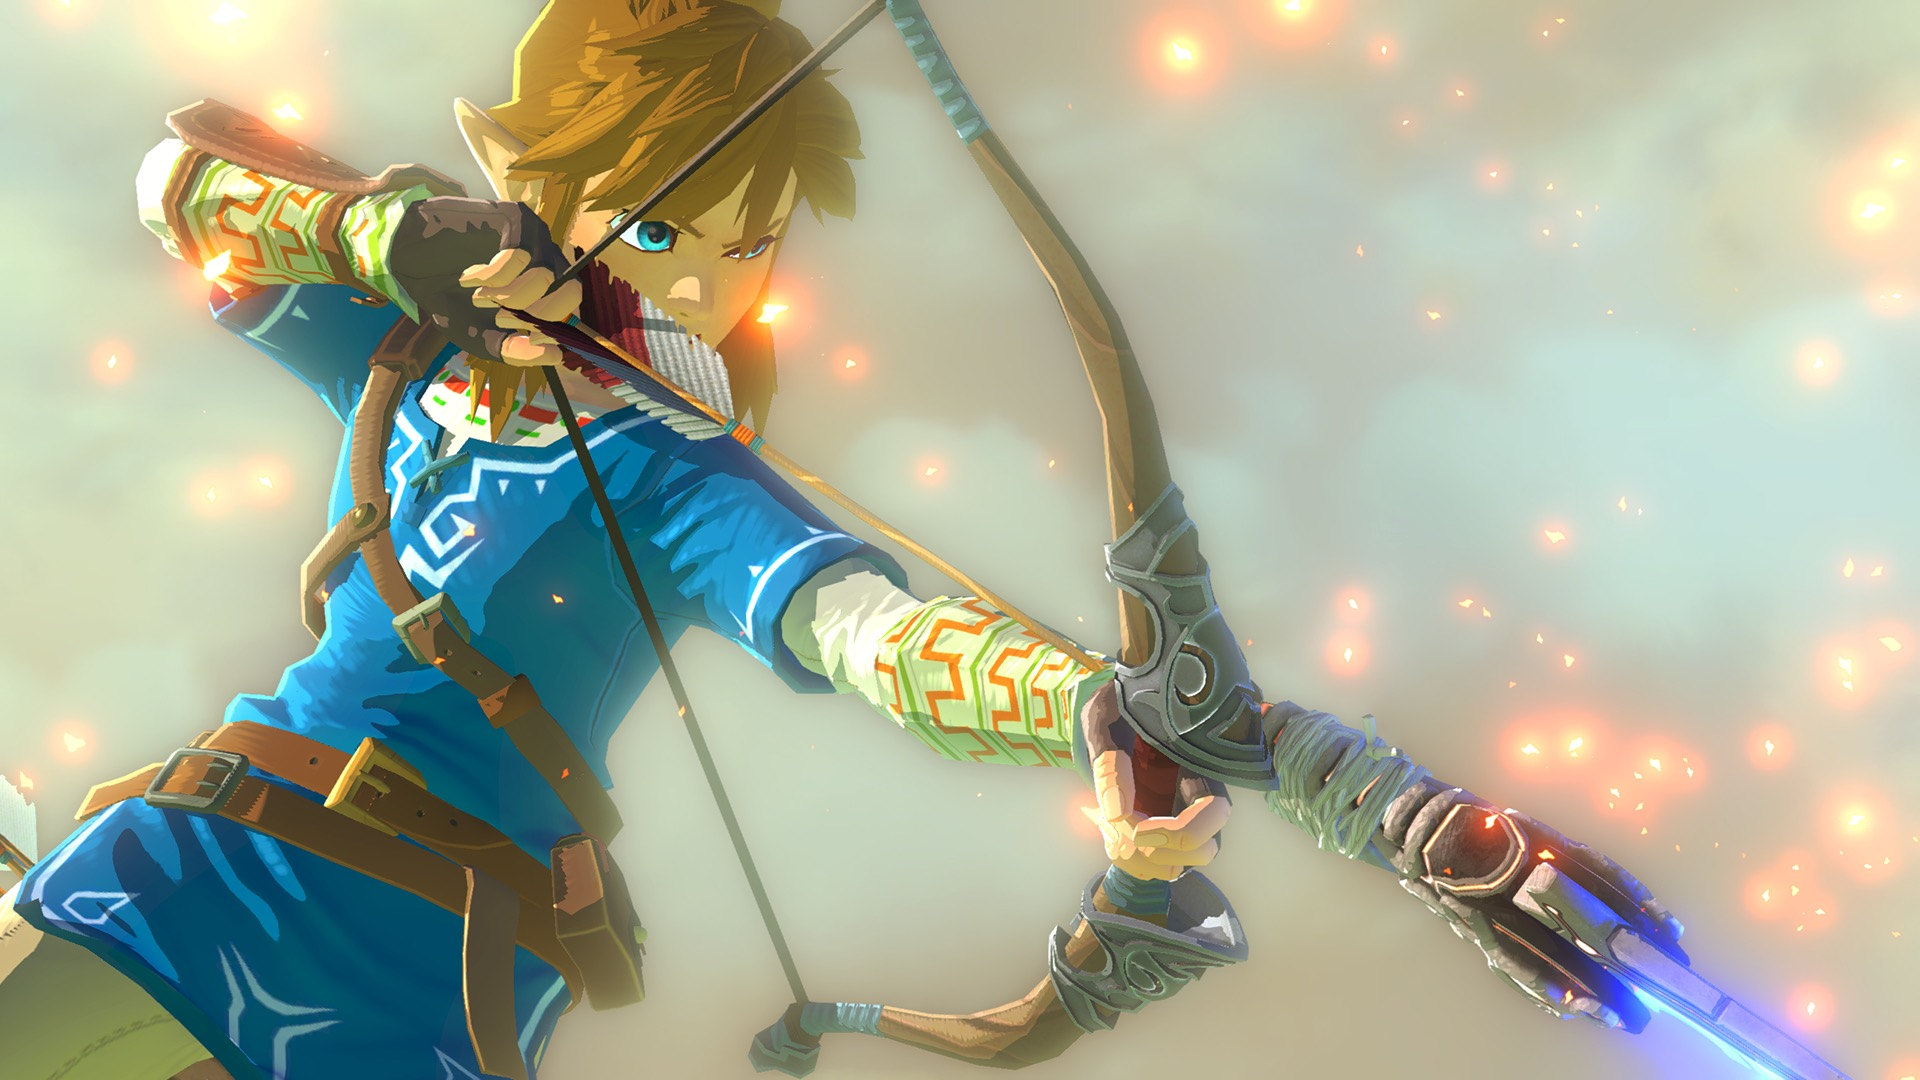 Zelda Wii U Trailer at E3 Showed Actual Gameplay